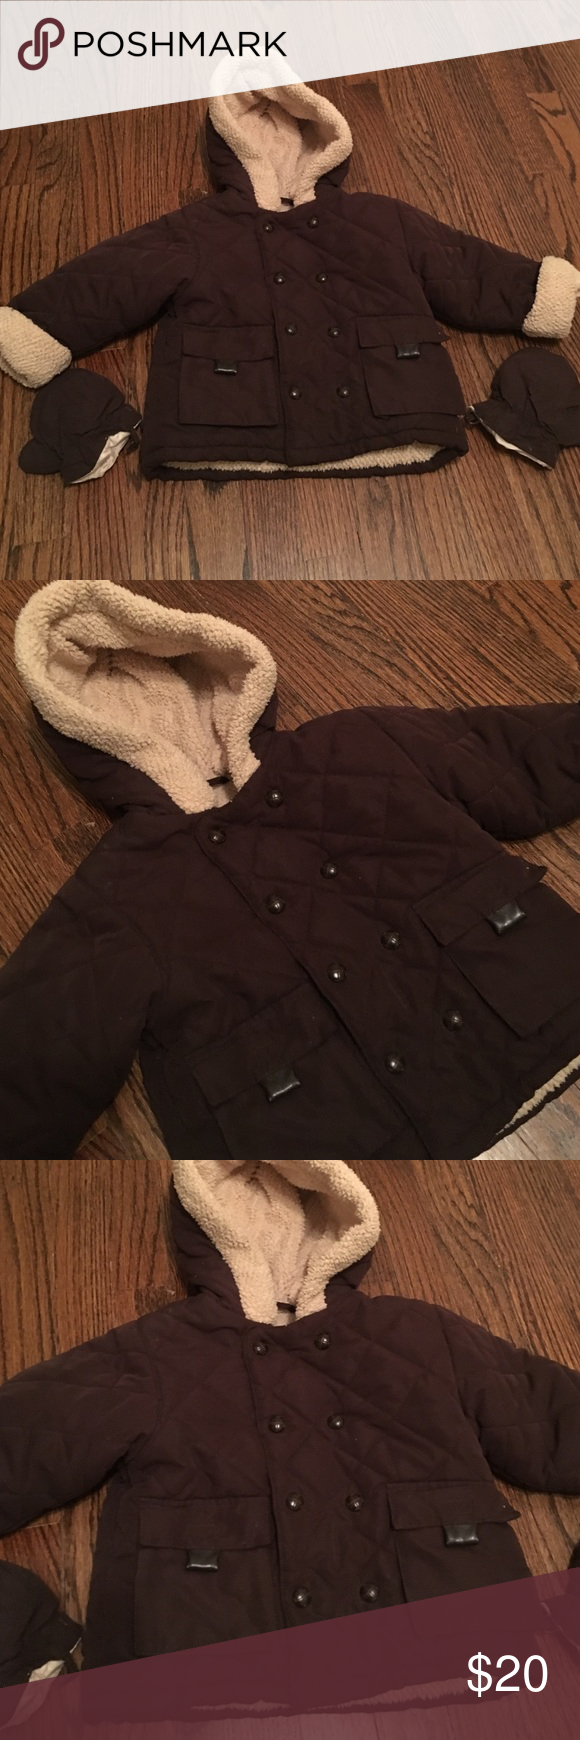 ⛄️Little boys fleece lined coat and mitten set⛄️ Super warm boys fleece lined coat with matching mittens. Chocolate brown zip and snap front coat with front pockets. In very good condition. Size 12 months. Brand is Below Zero purchased from Lord and Taylor. From a smoke and pet free home. ❌no trades❌ Below Zero Jackets & Coats